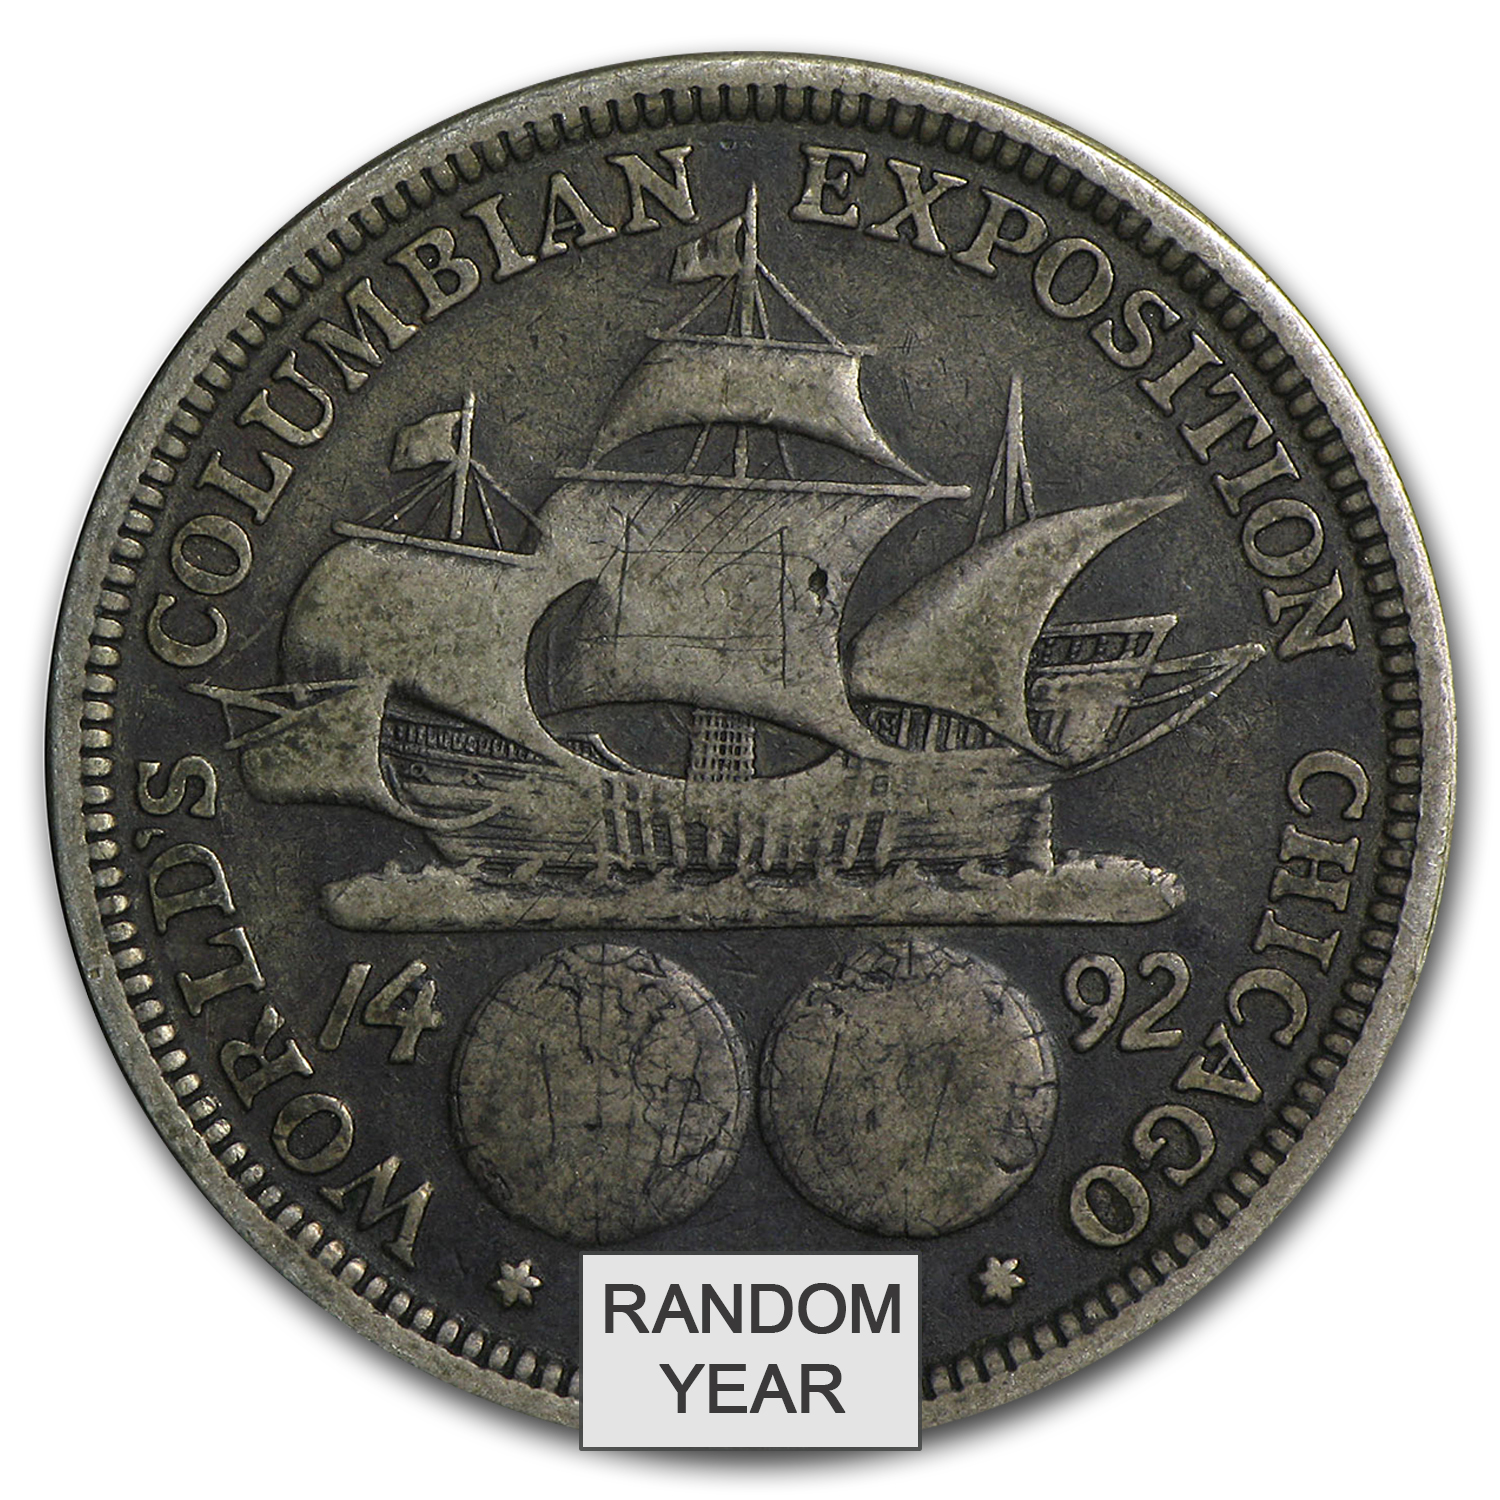 1892-1893 Columbian Exposition Half-Dollar (Average Circulated)